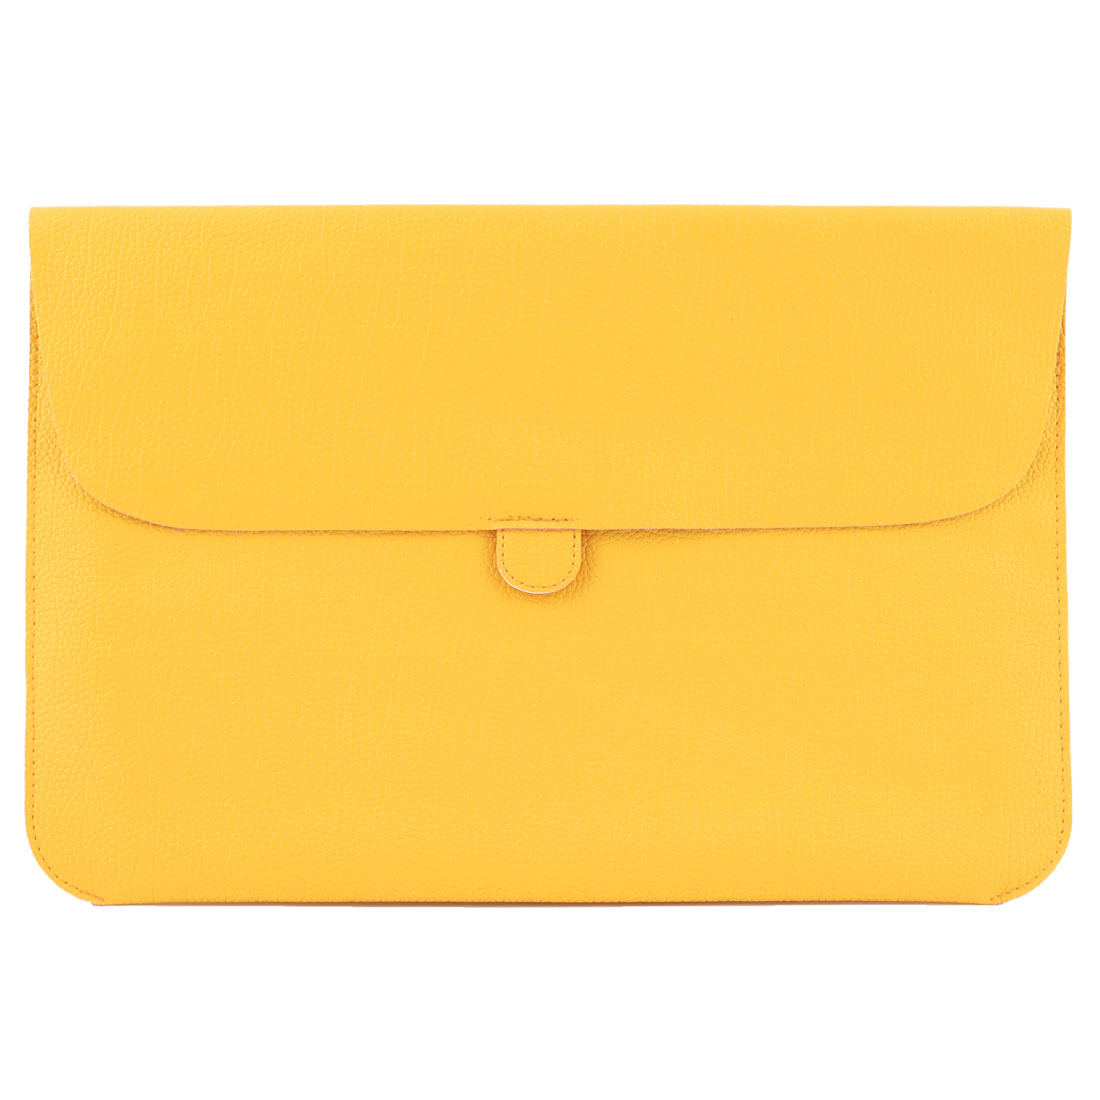 PC Computer PU Leather Sleeve Case Puoch Protective Yellow for Macbook Air 11 Inch